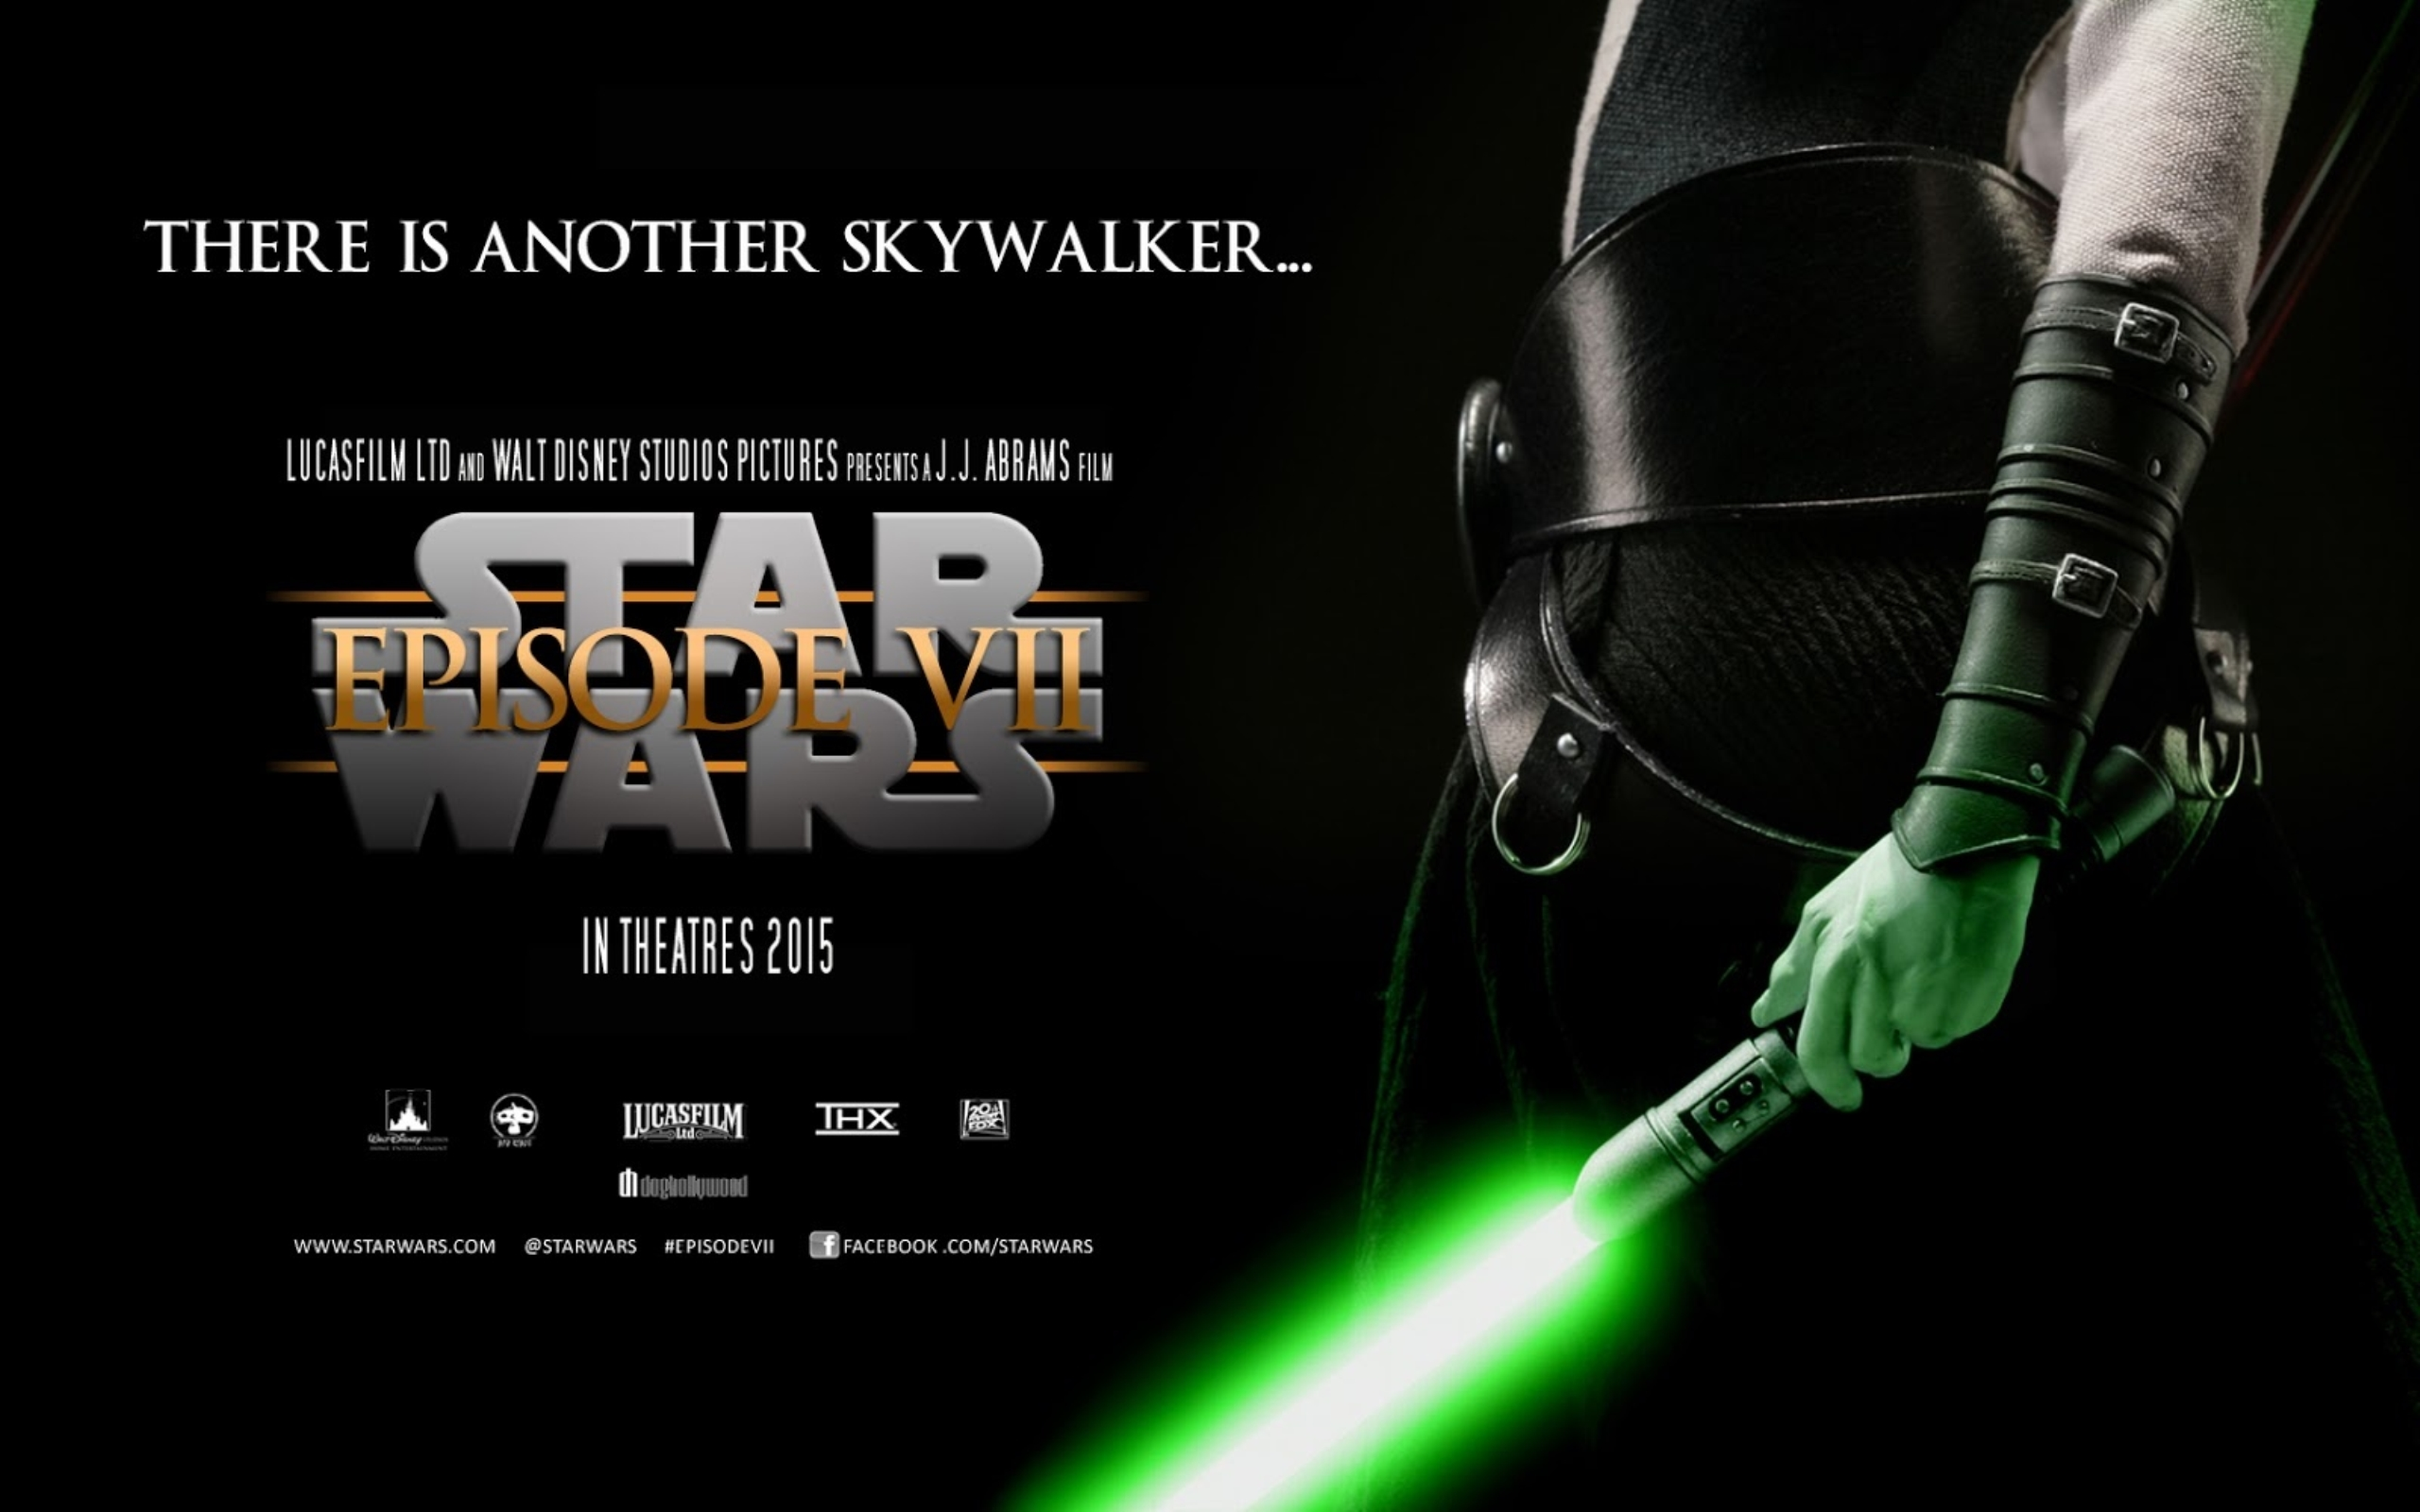 a report on star wars episode vii the force awakens a 2015 american epic space opera film by j j abr Star wars: the force awakens (also known as star wars: episode vii – the force awakens) is a 2015 american epic space opera film directed.